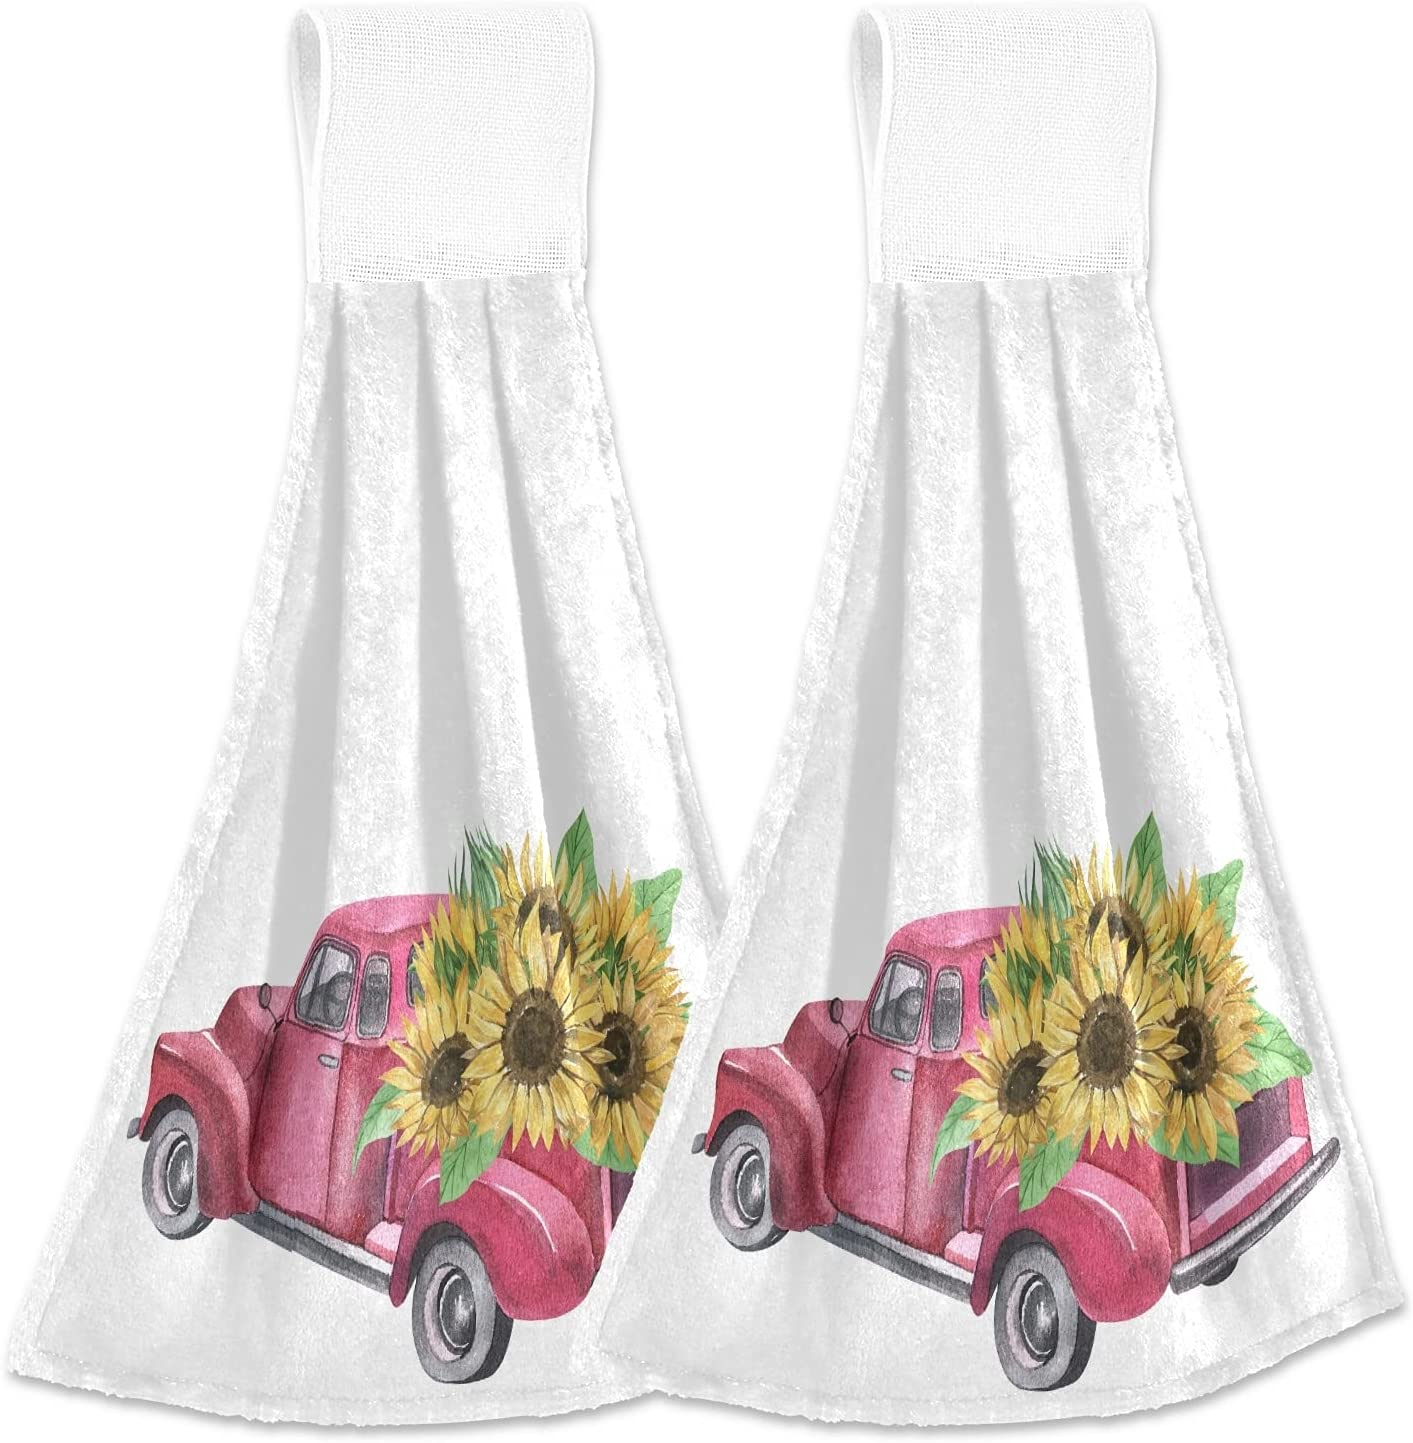 Vintage Red Truck Kitchen Hanging Hand Towels,Spring Sunflowers Absorbent Tie Towel with Loop 2 PCS Kitchen Linen Sets for Bathroom Restroom Home Decor